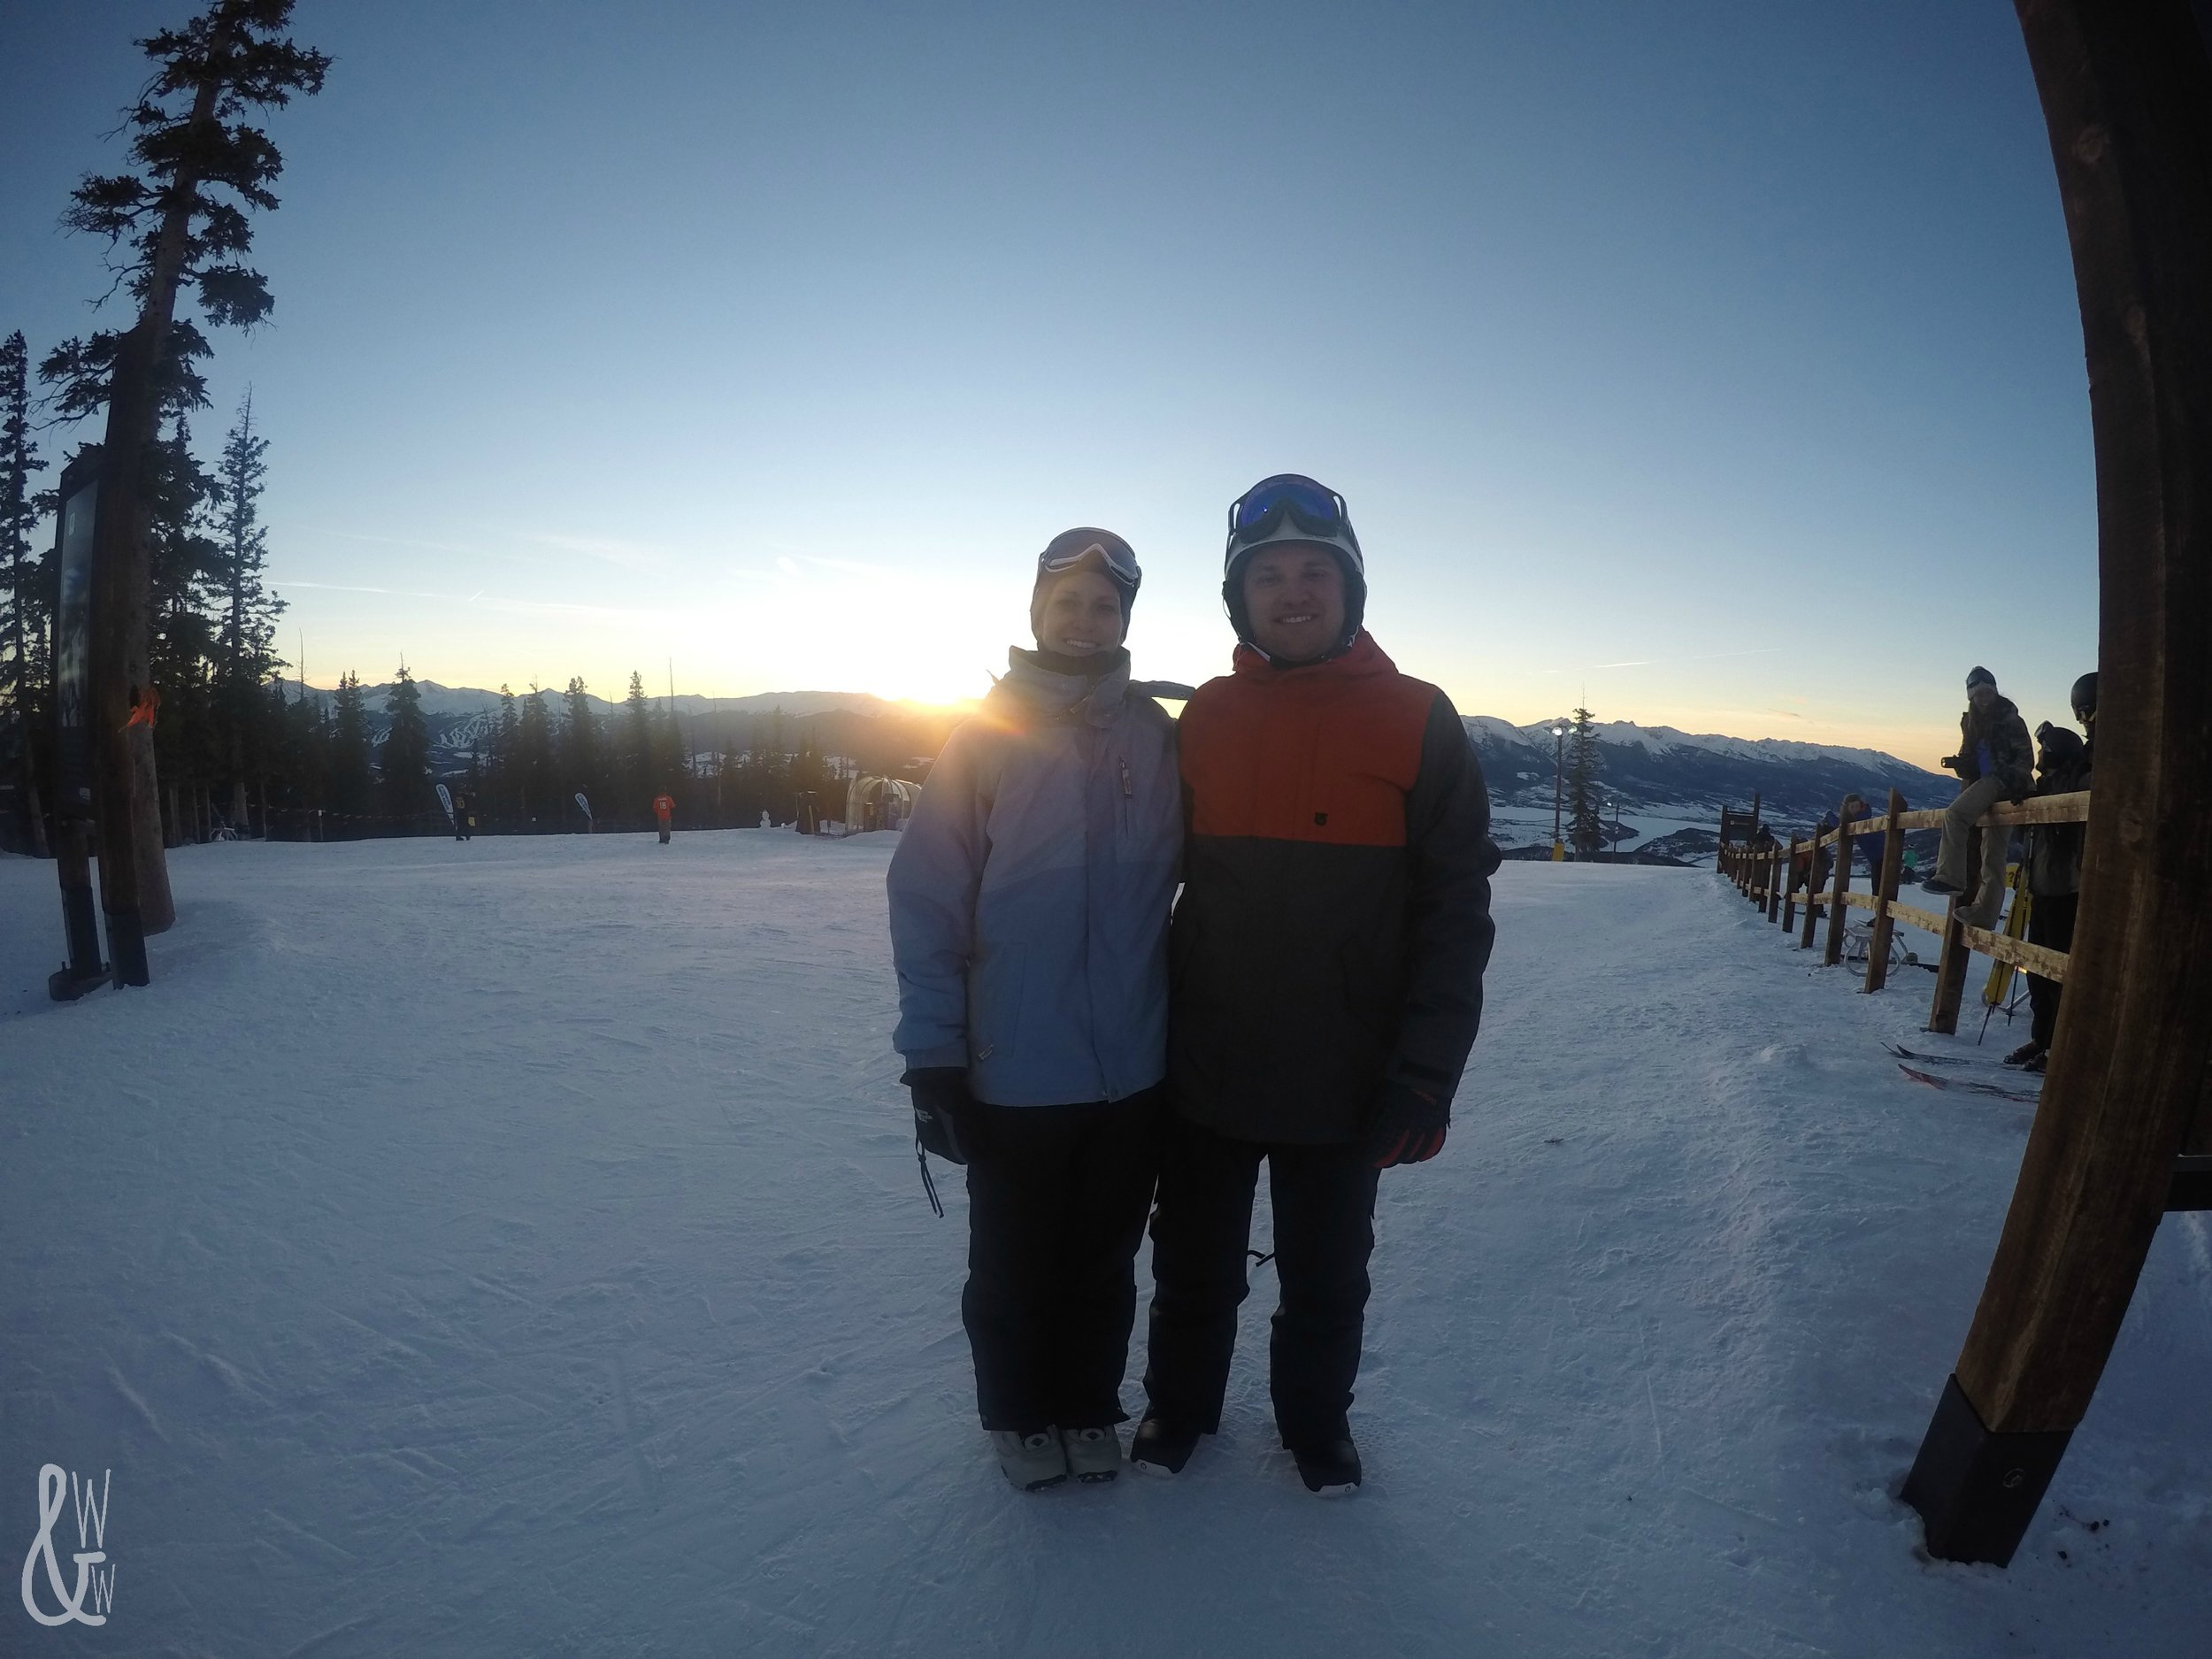 Enjoying my February photography challenge by trying out my new GoPro!